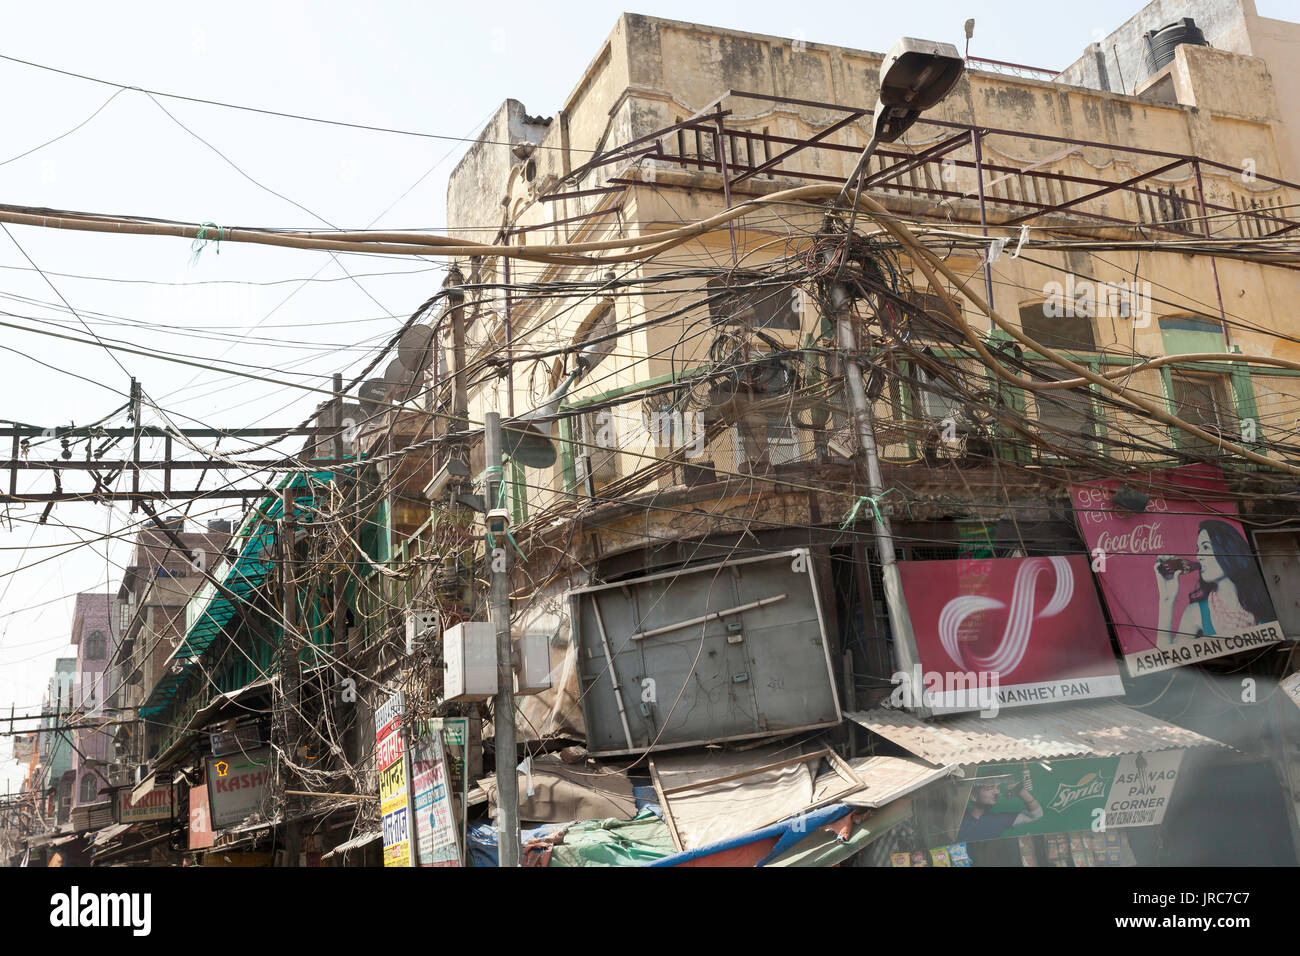 electrical wiring in delhi india on the street stock photo rh alamy com India Telephone Wiring Stealing Electric Lines India